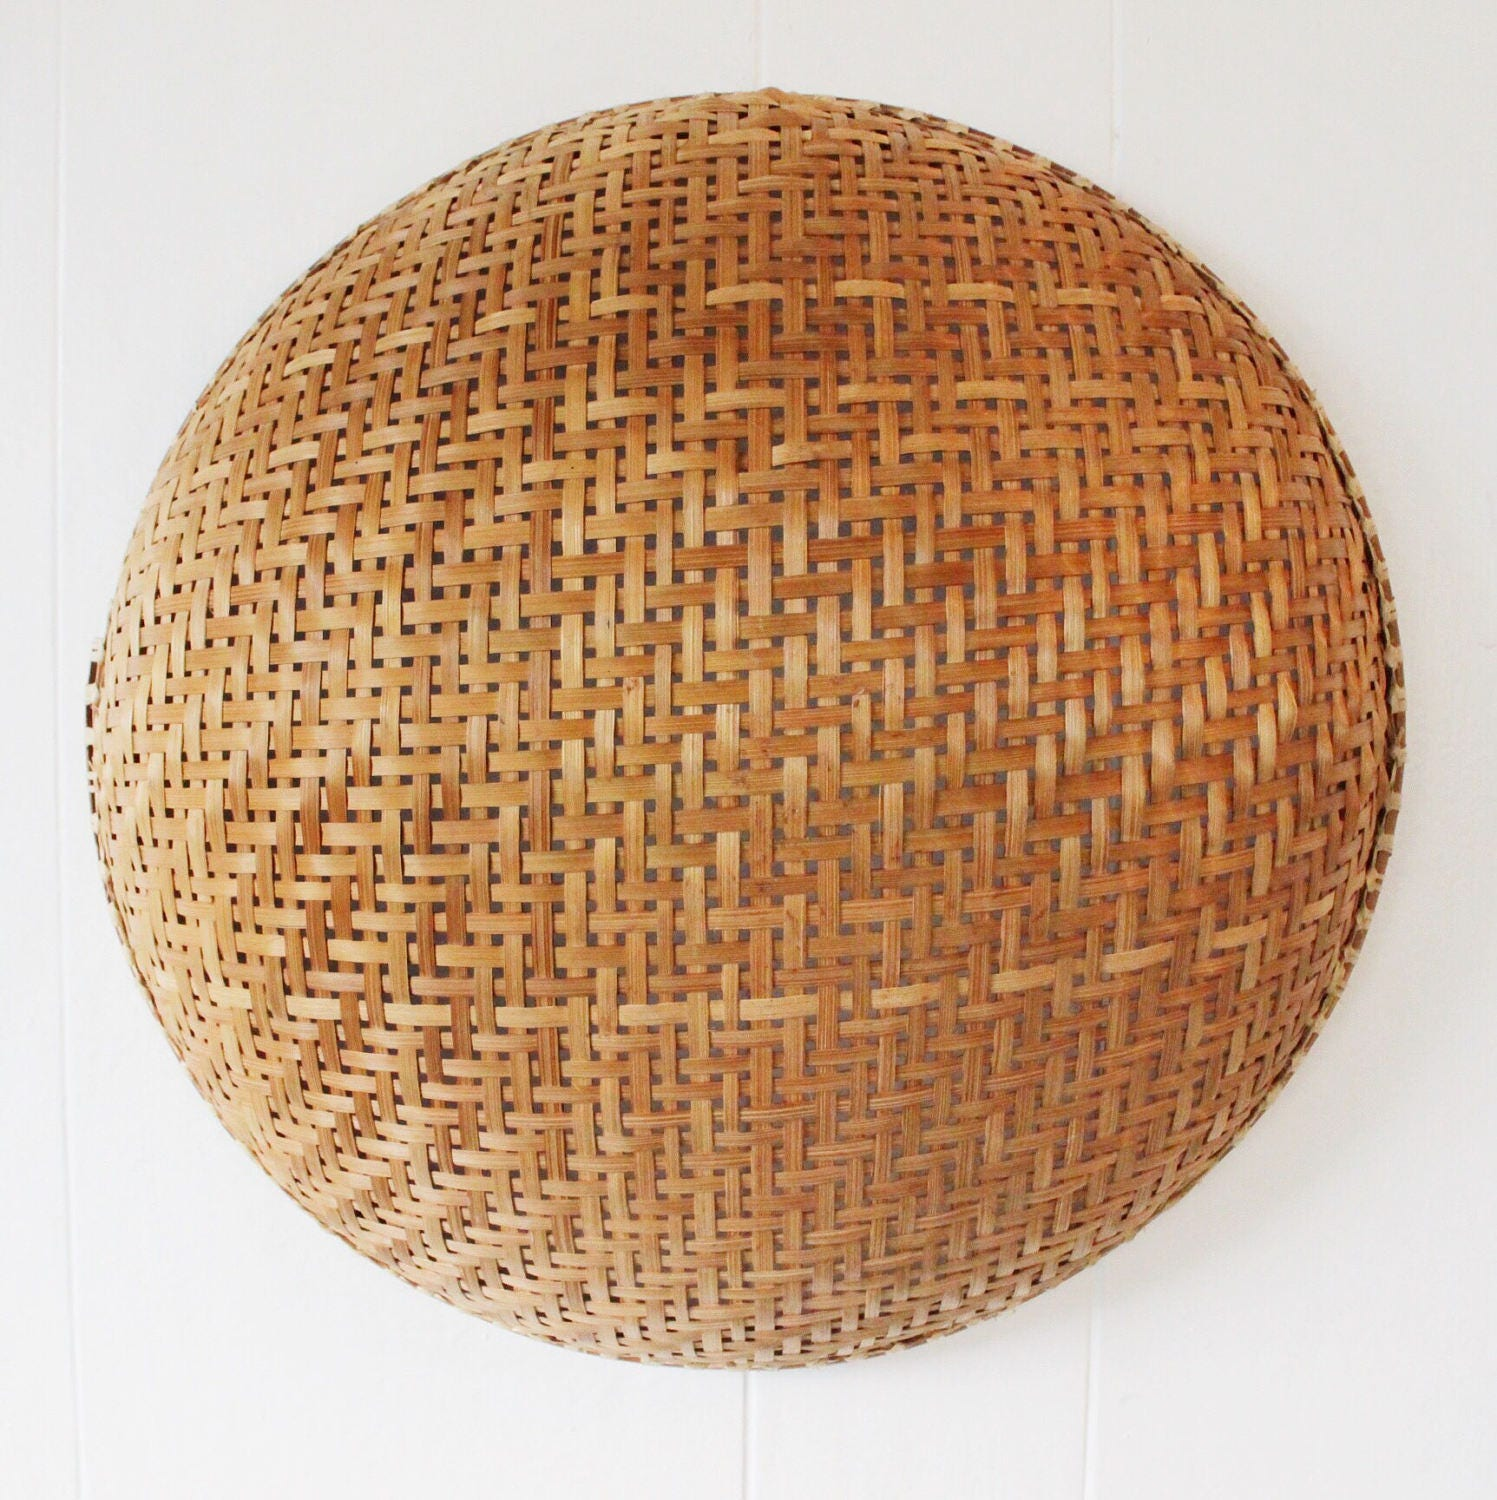 Rattan Wall Decor Round : Woven bamboo basket round rattan bowl boho wall hanging